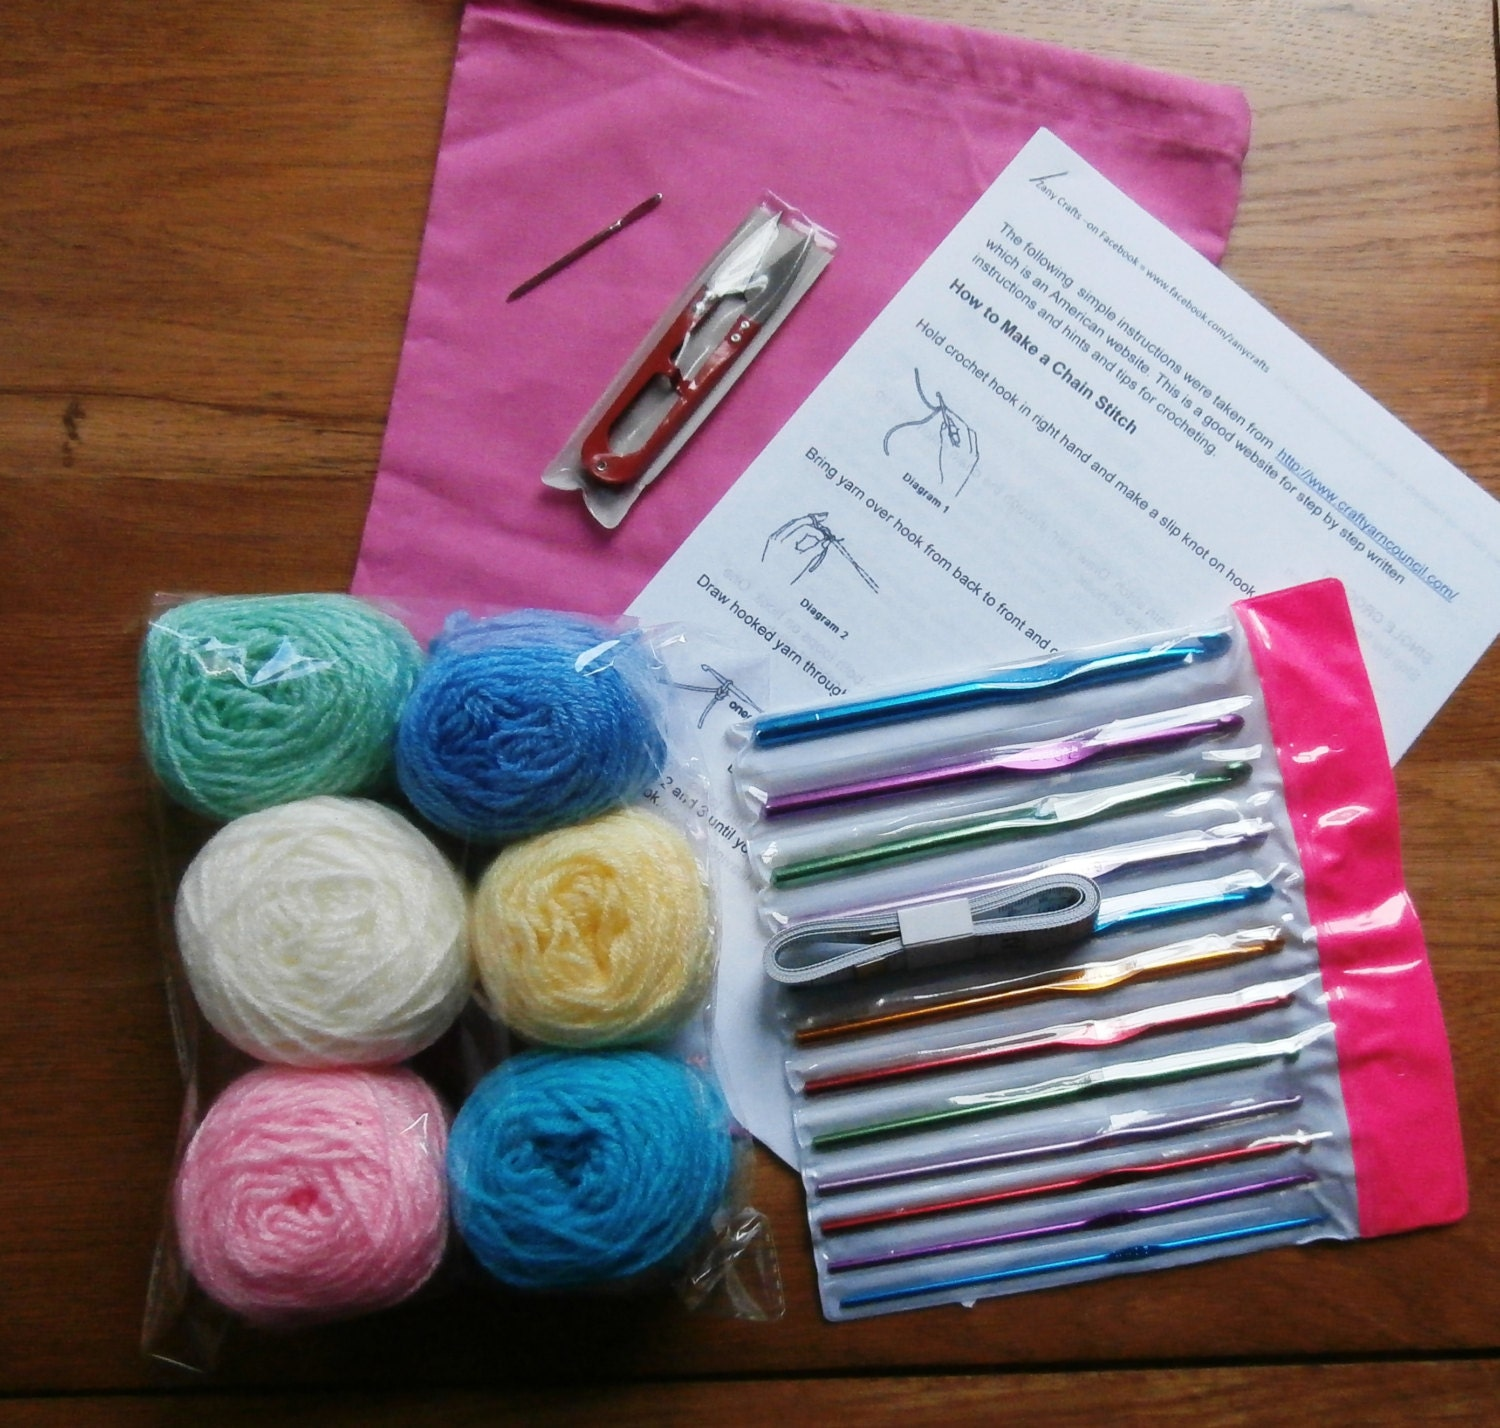 Knitting Kits For Beginners Uk : Off beginners crochet kit wool snips darning needle